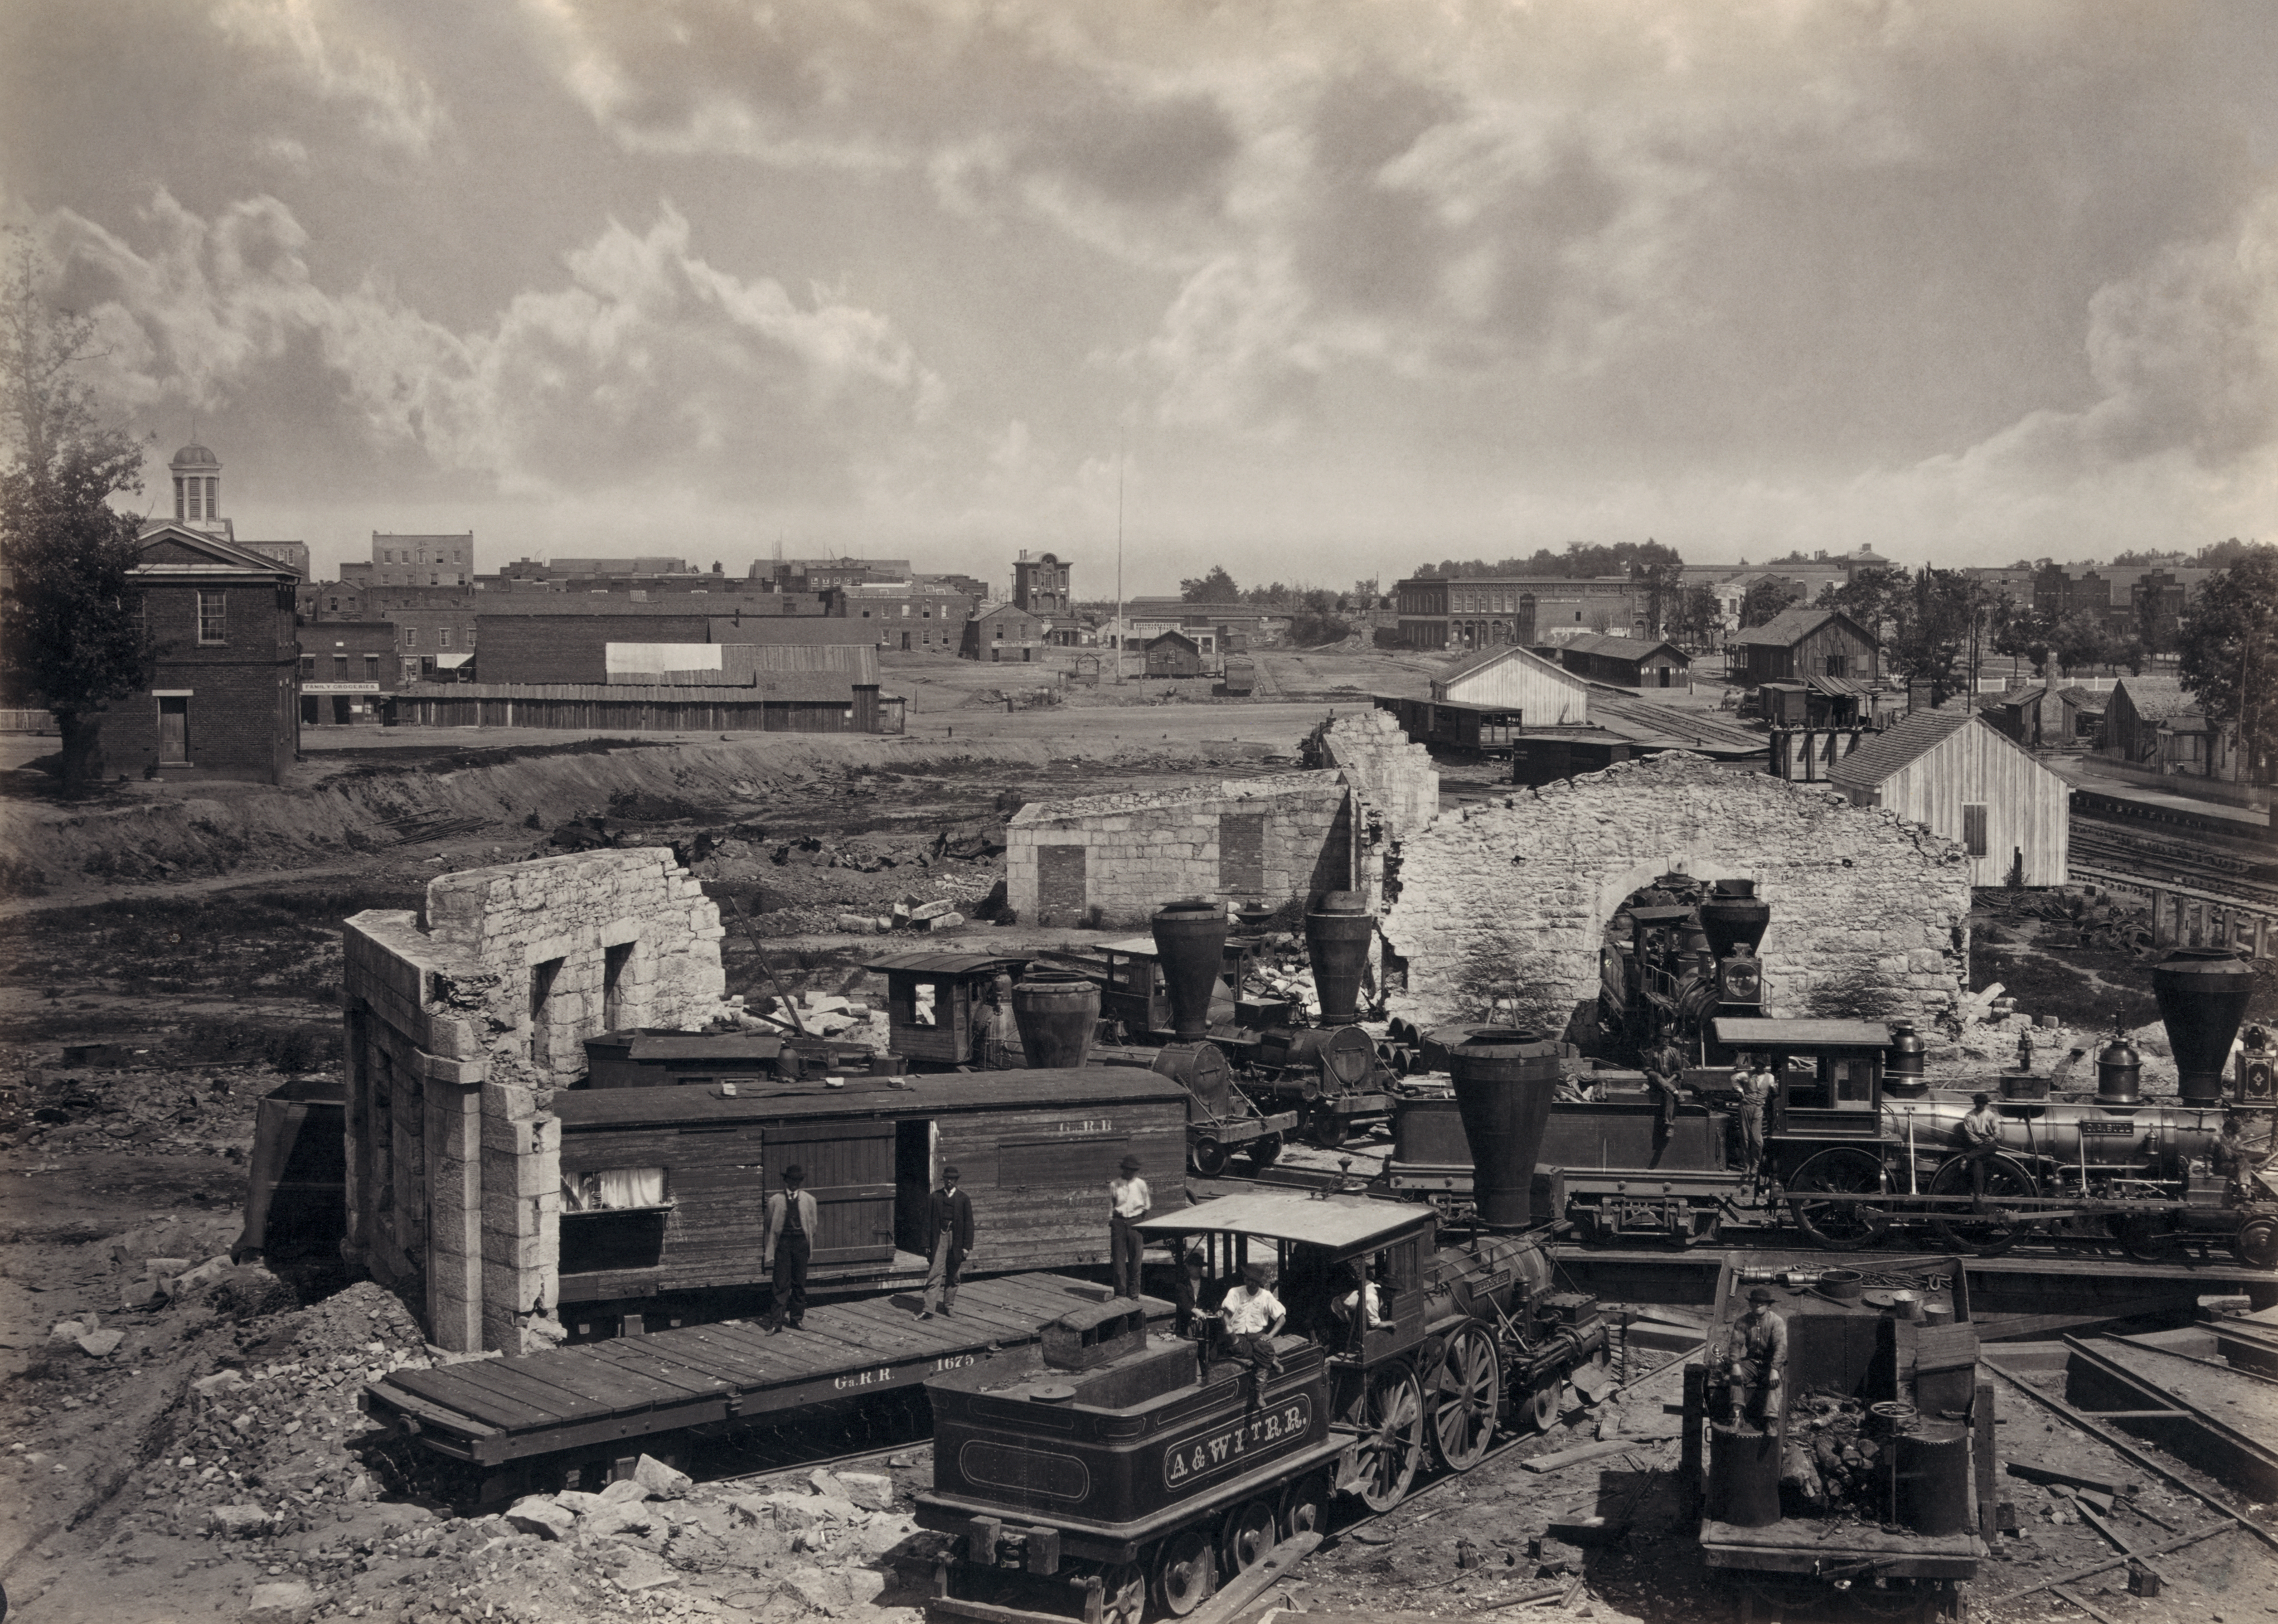 photographers of the american civil war ruined roundhouse in atlanta after the atlanta campaign albumen print by george barnard 1866 digitally restored a distinctive attribute of